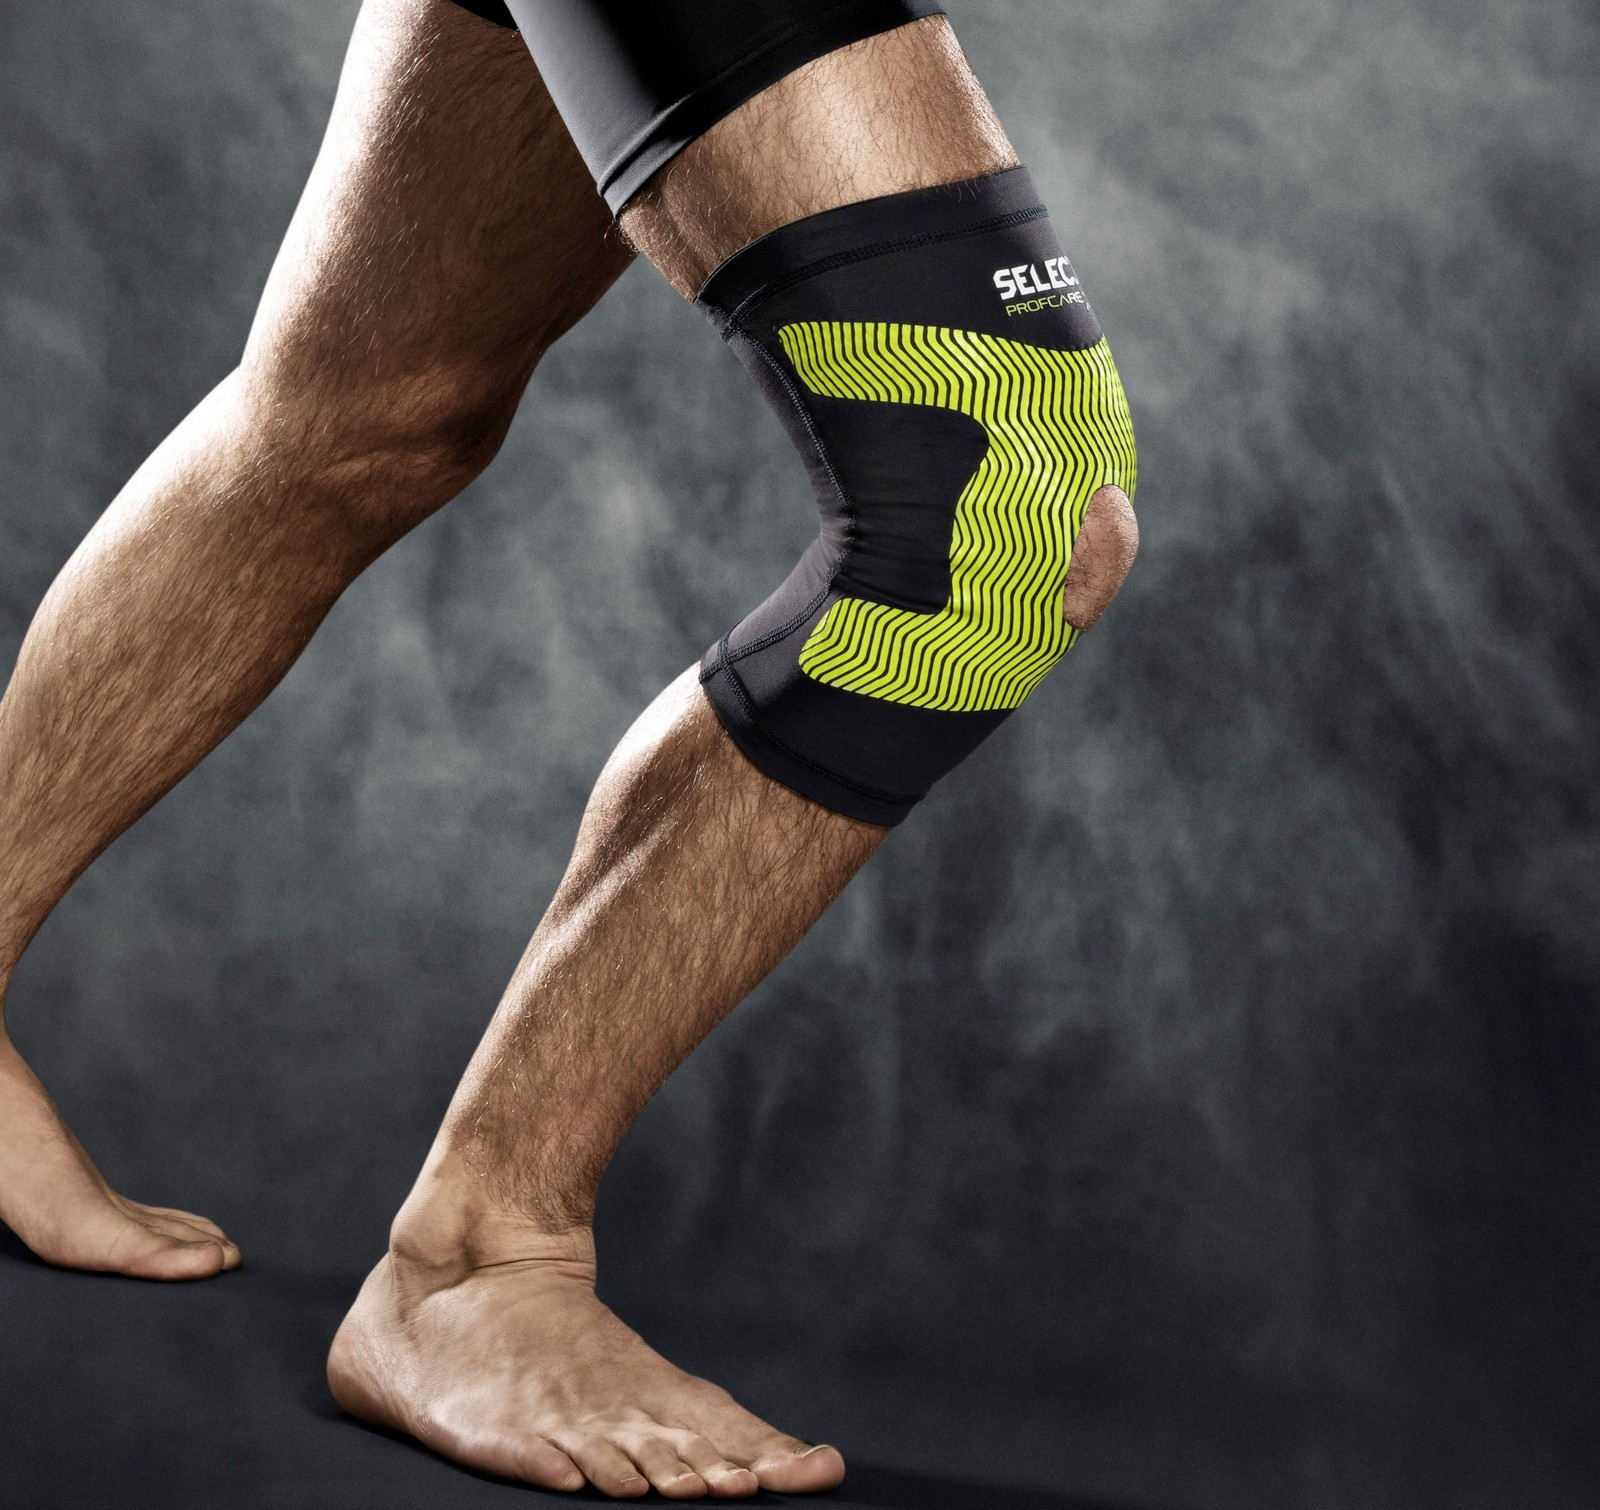 Compression knee support 6252  - Select